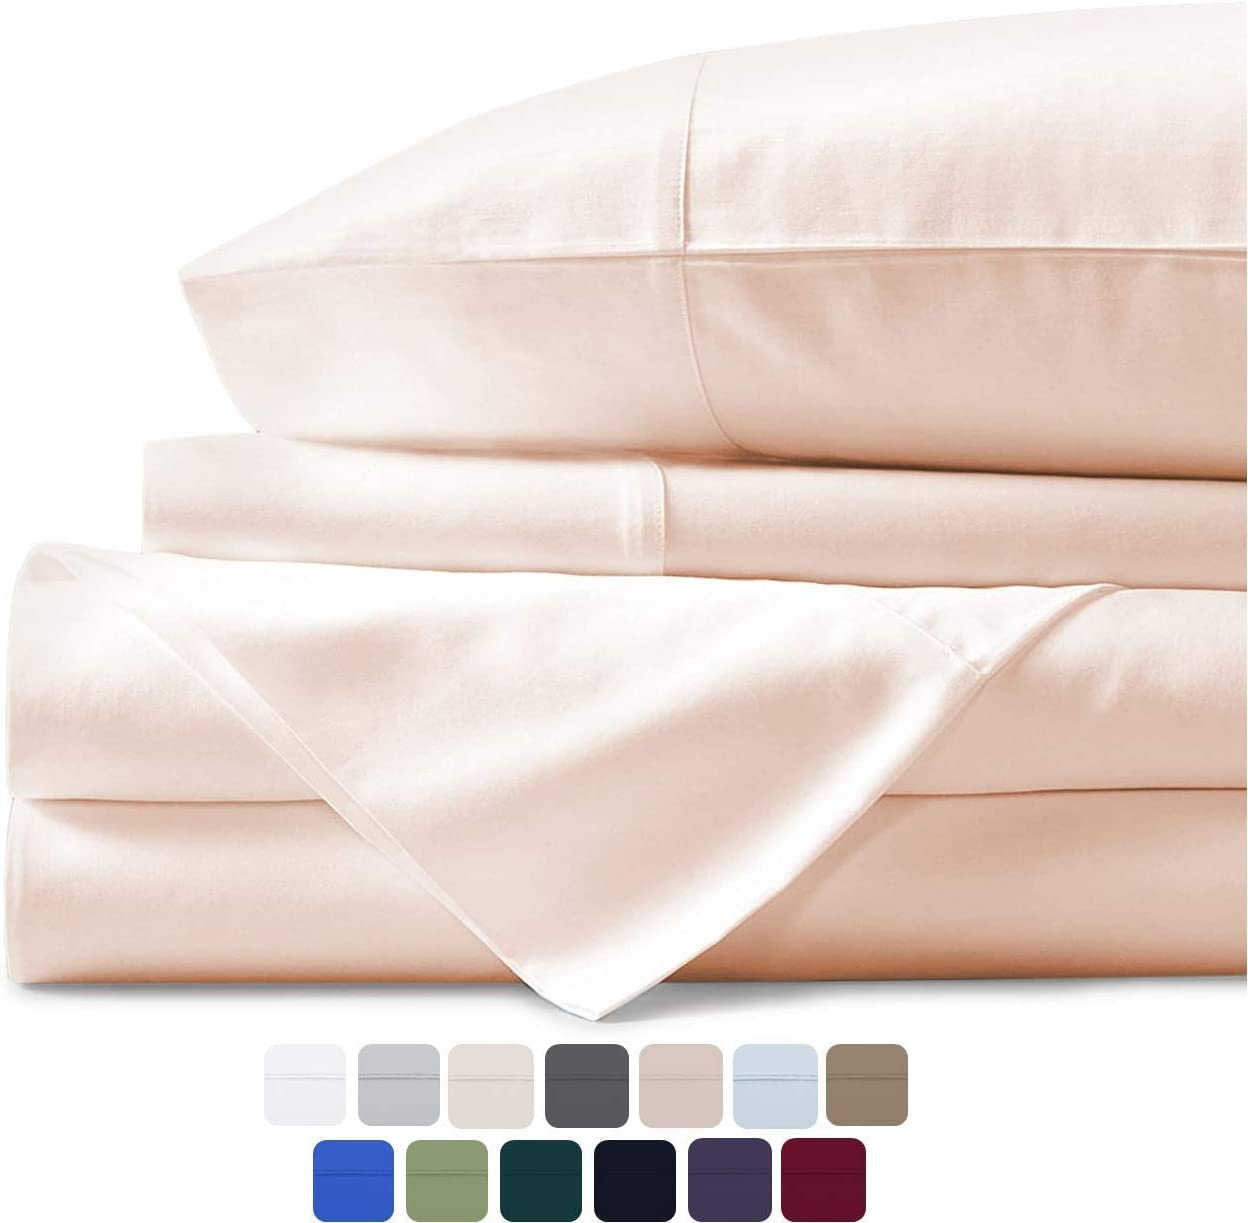 Mayfair Linen 100% Egyptian Cotton Sheets, Ivory California King Sheets Set, 600 Thread Count Long Staple Cotton, Sateen Weave for Soft and Silky Feel, Fits Mattress Upto 18'' DEEP Pocket